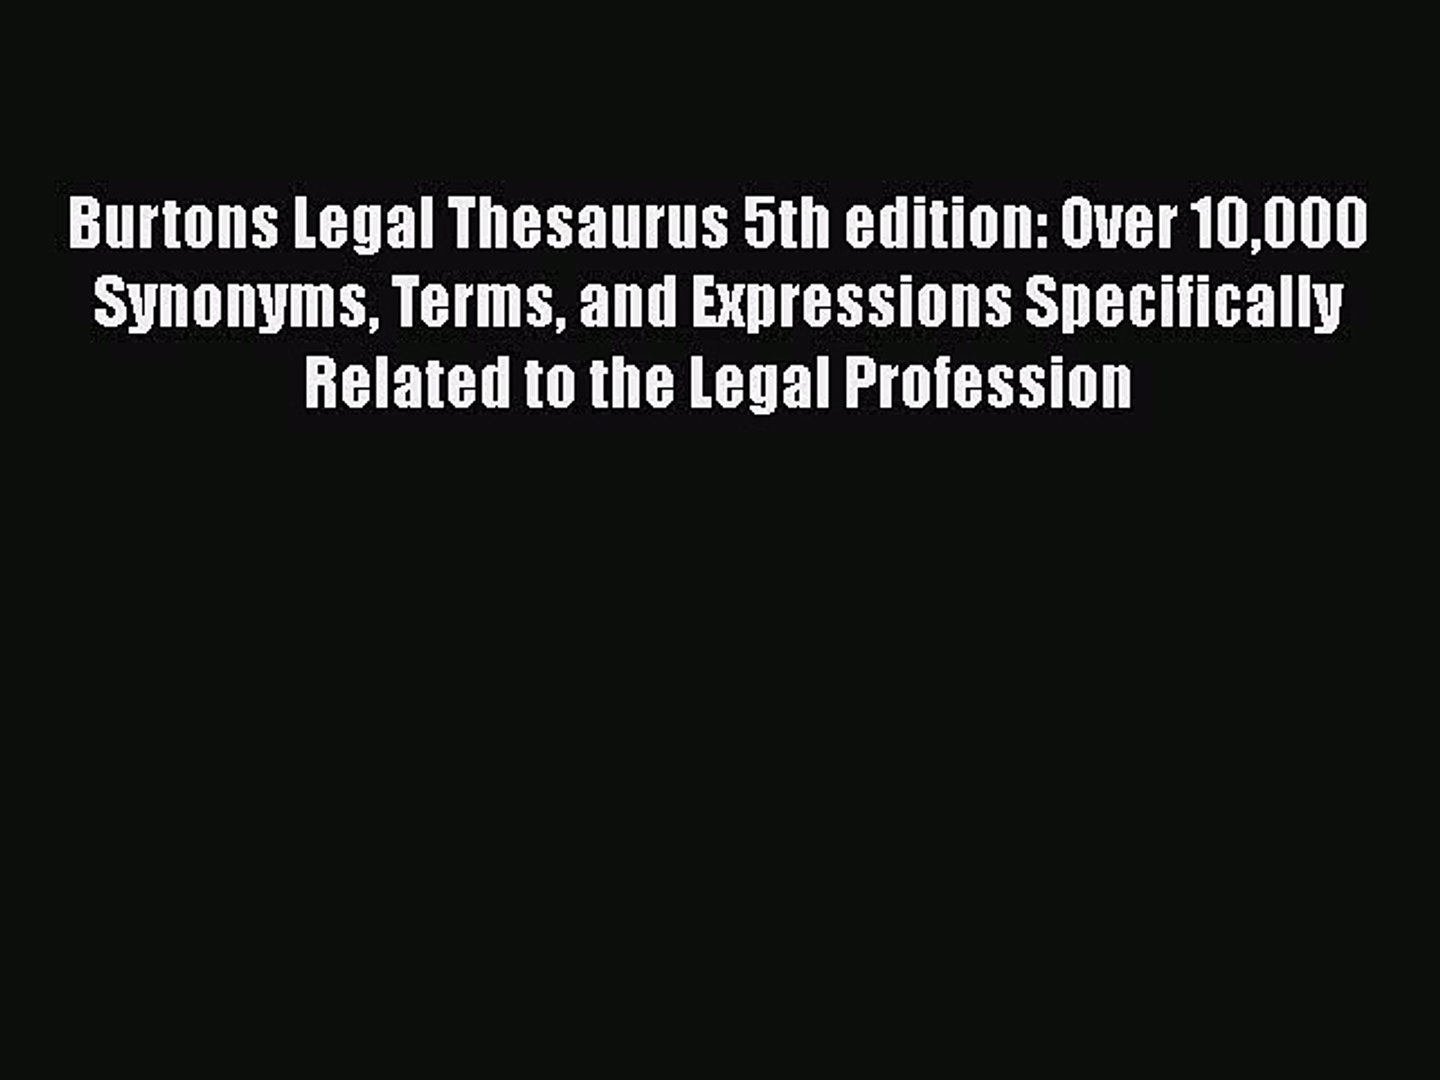 PDF Burtons Legal Thesaurus 5th edition: Over 10000 Synonyms Terms and Expressions Specifically